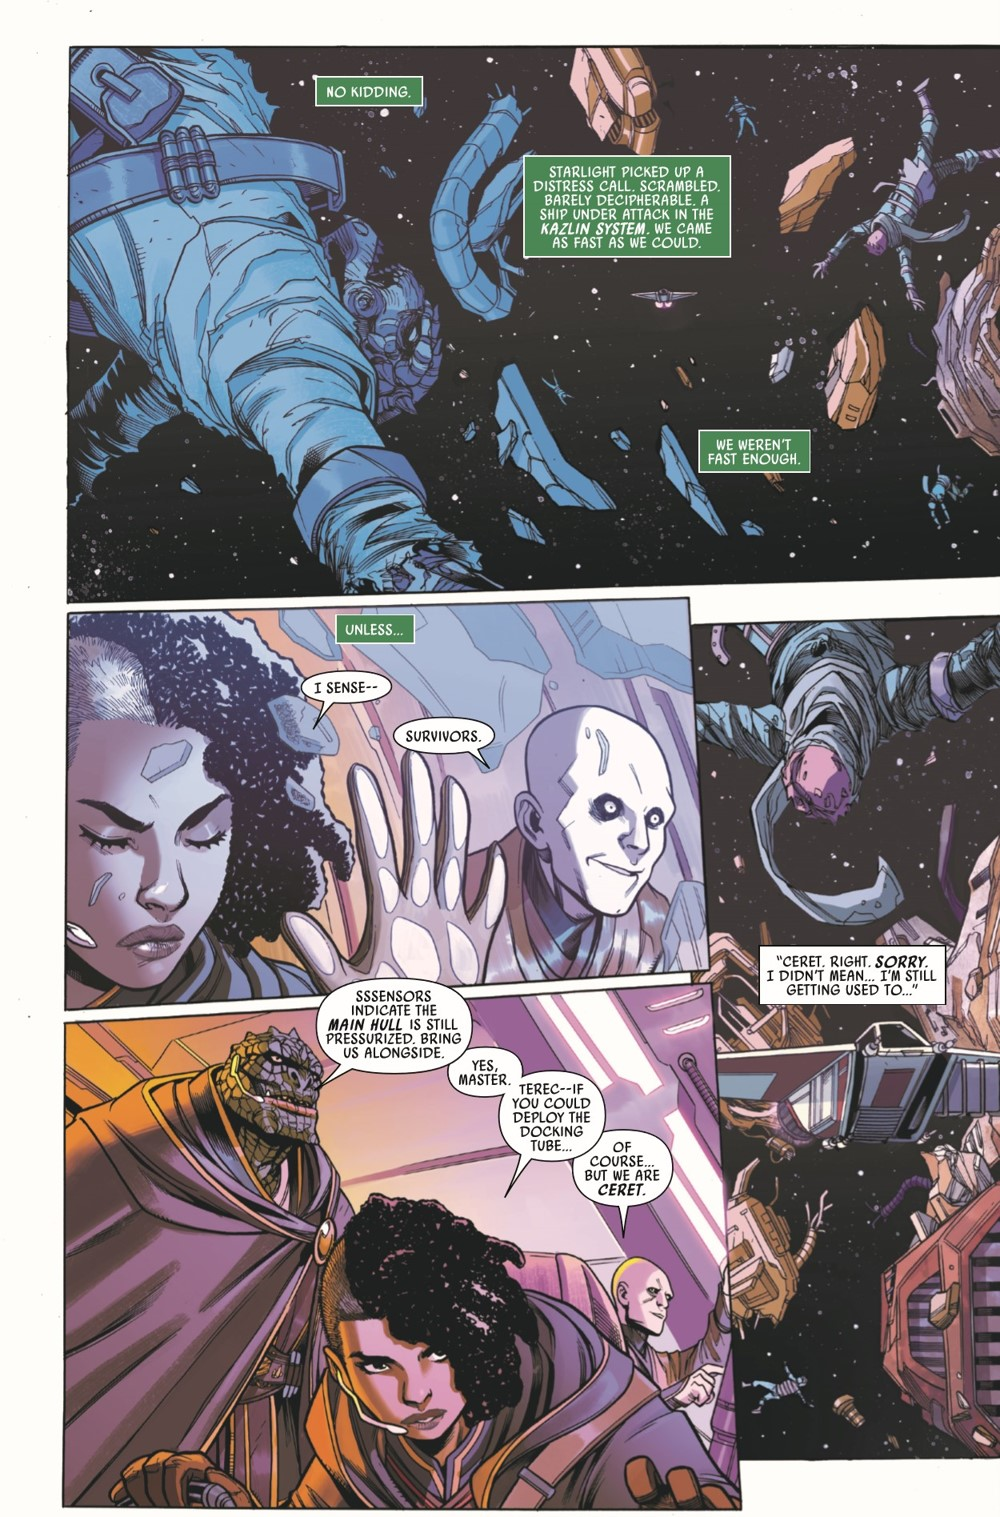 STWHIGHREP2021002_Preview-3 ComicList Previews: STAR WARS THE HIGH REPUBLIC #2